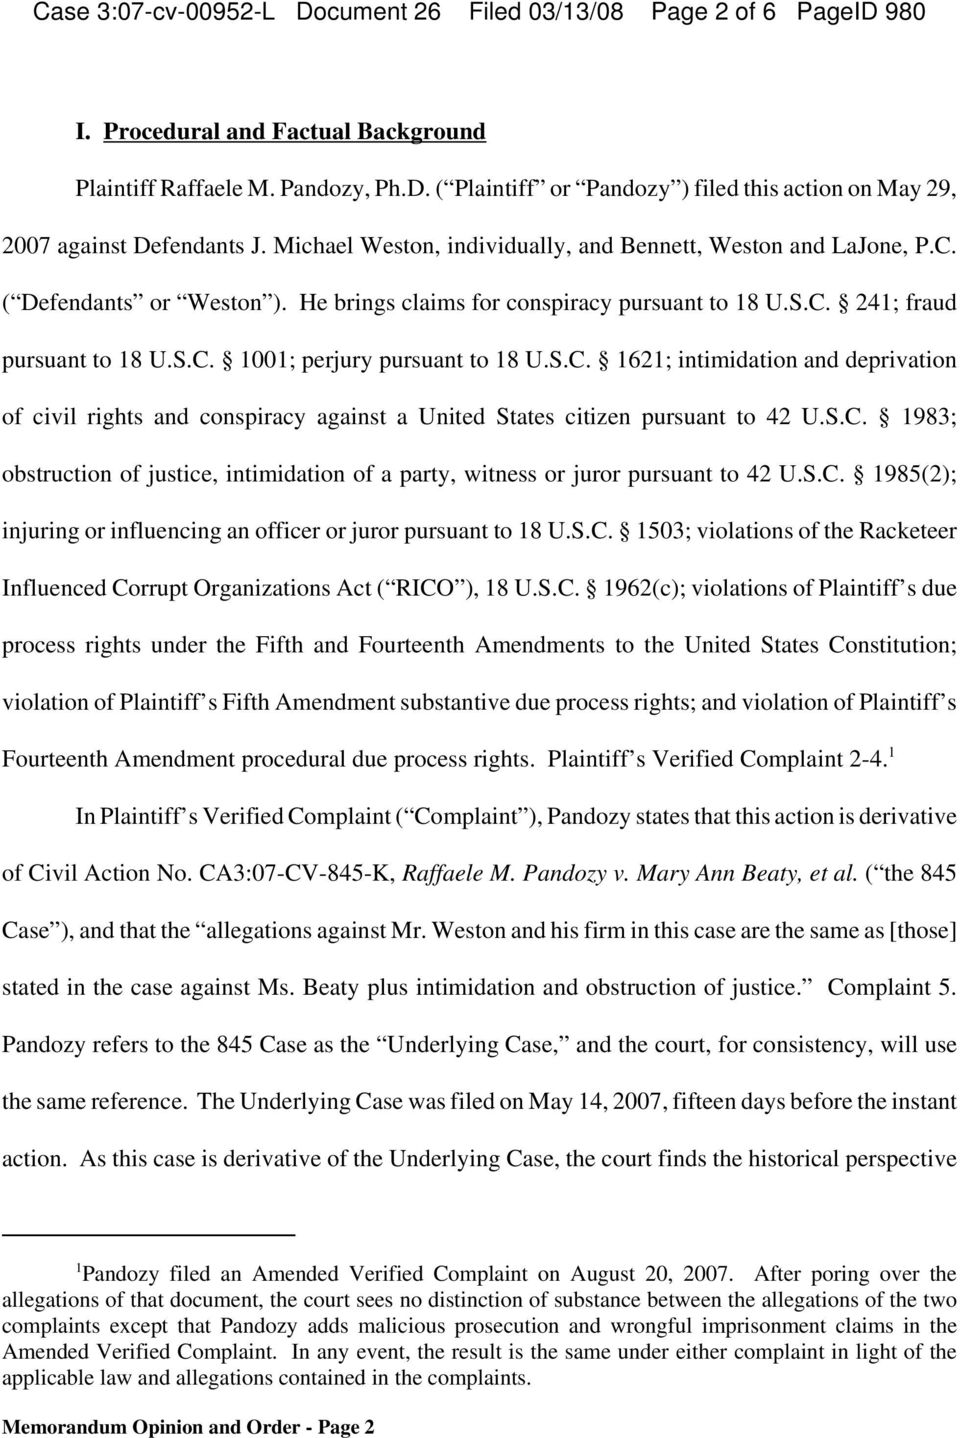 S.C. 1621; intimidation and deprivation of civil rights and conspiracy against a United States citizen pursuant to 42 U.S.C. 1983; obstruction of justice, intimidation of a party, witness or juror pursuant to 42 U.